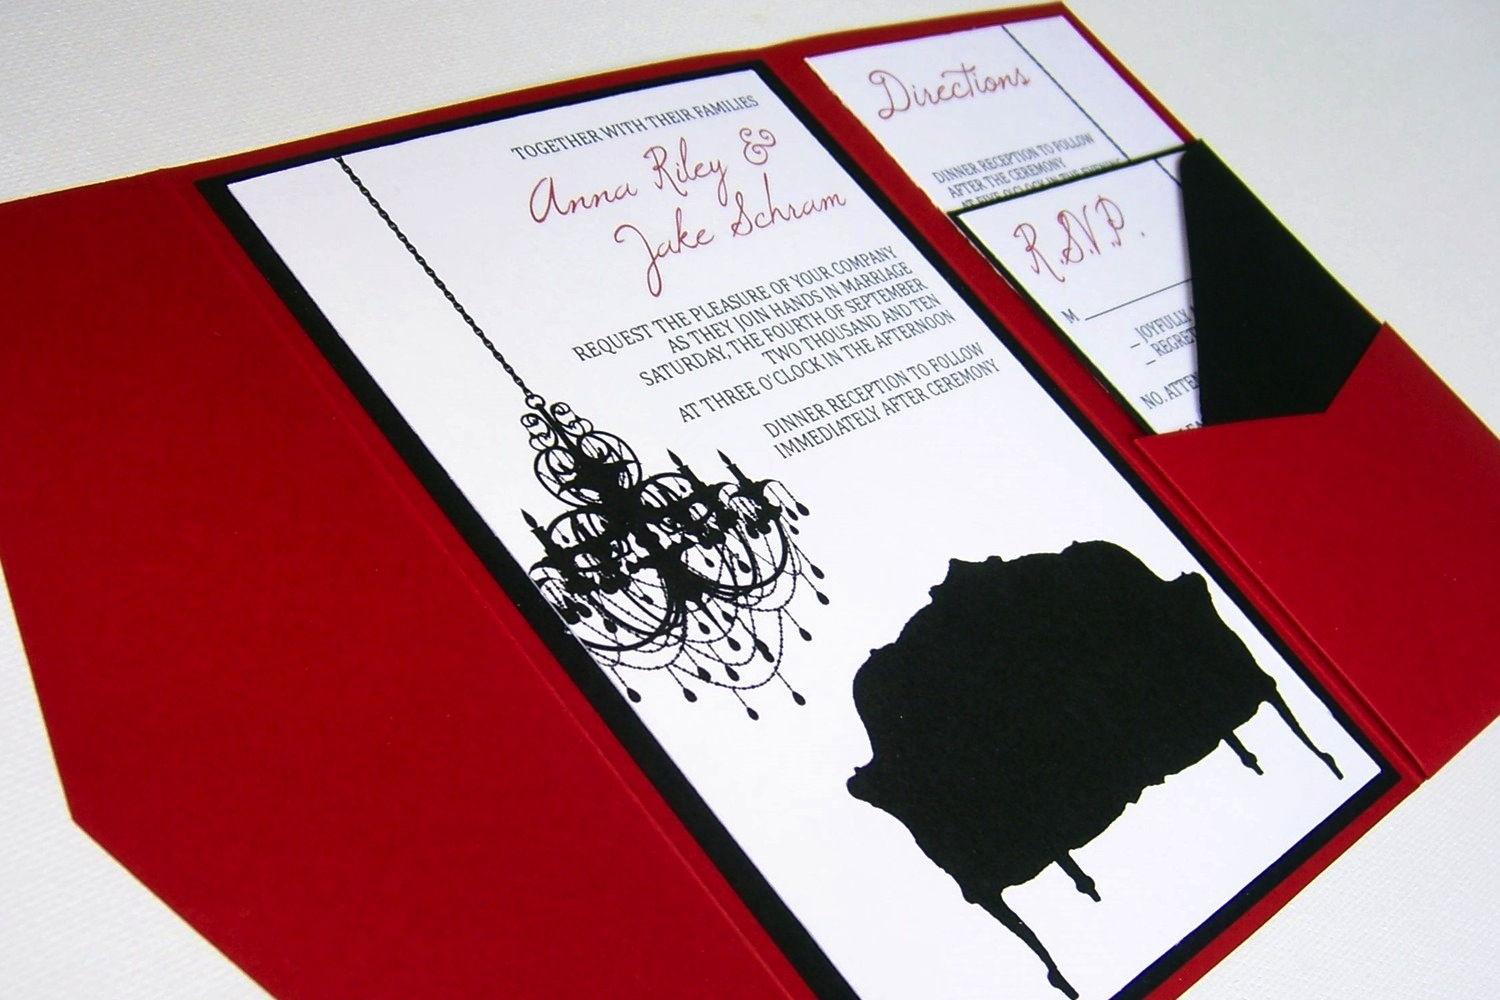 budget wedding ideas DIY invitations Etsy weddings red ...